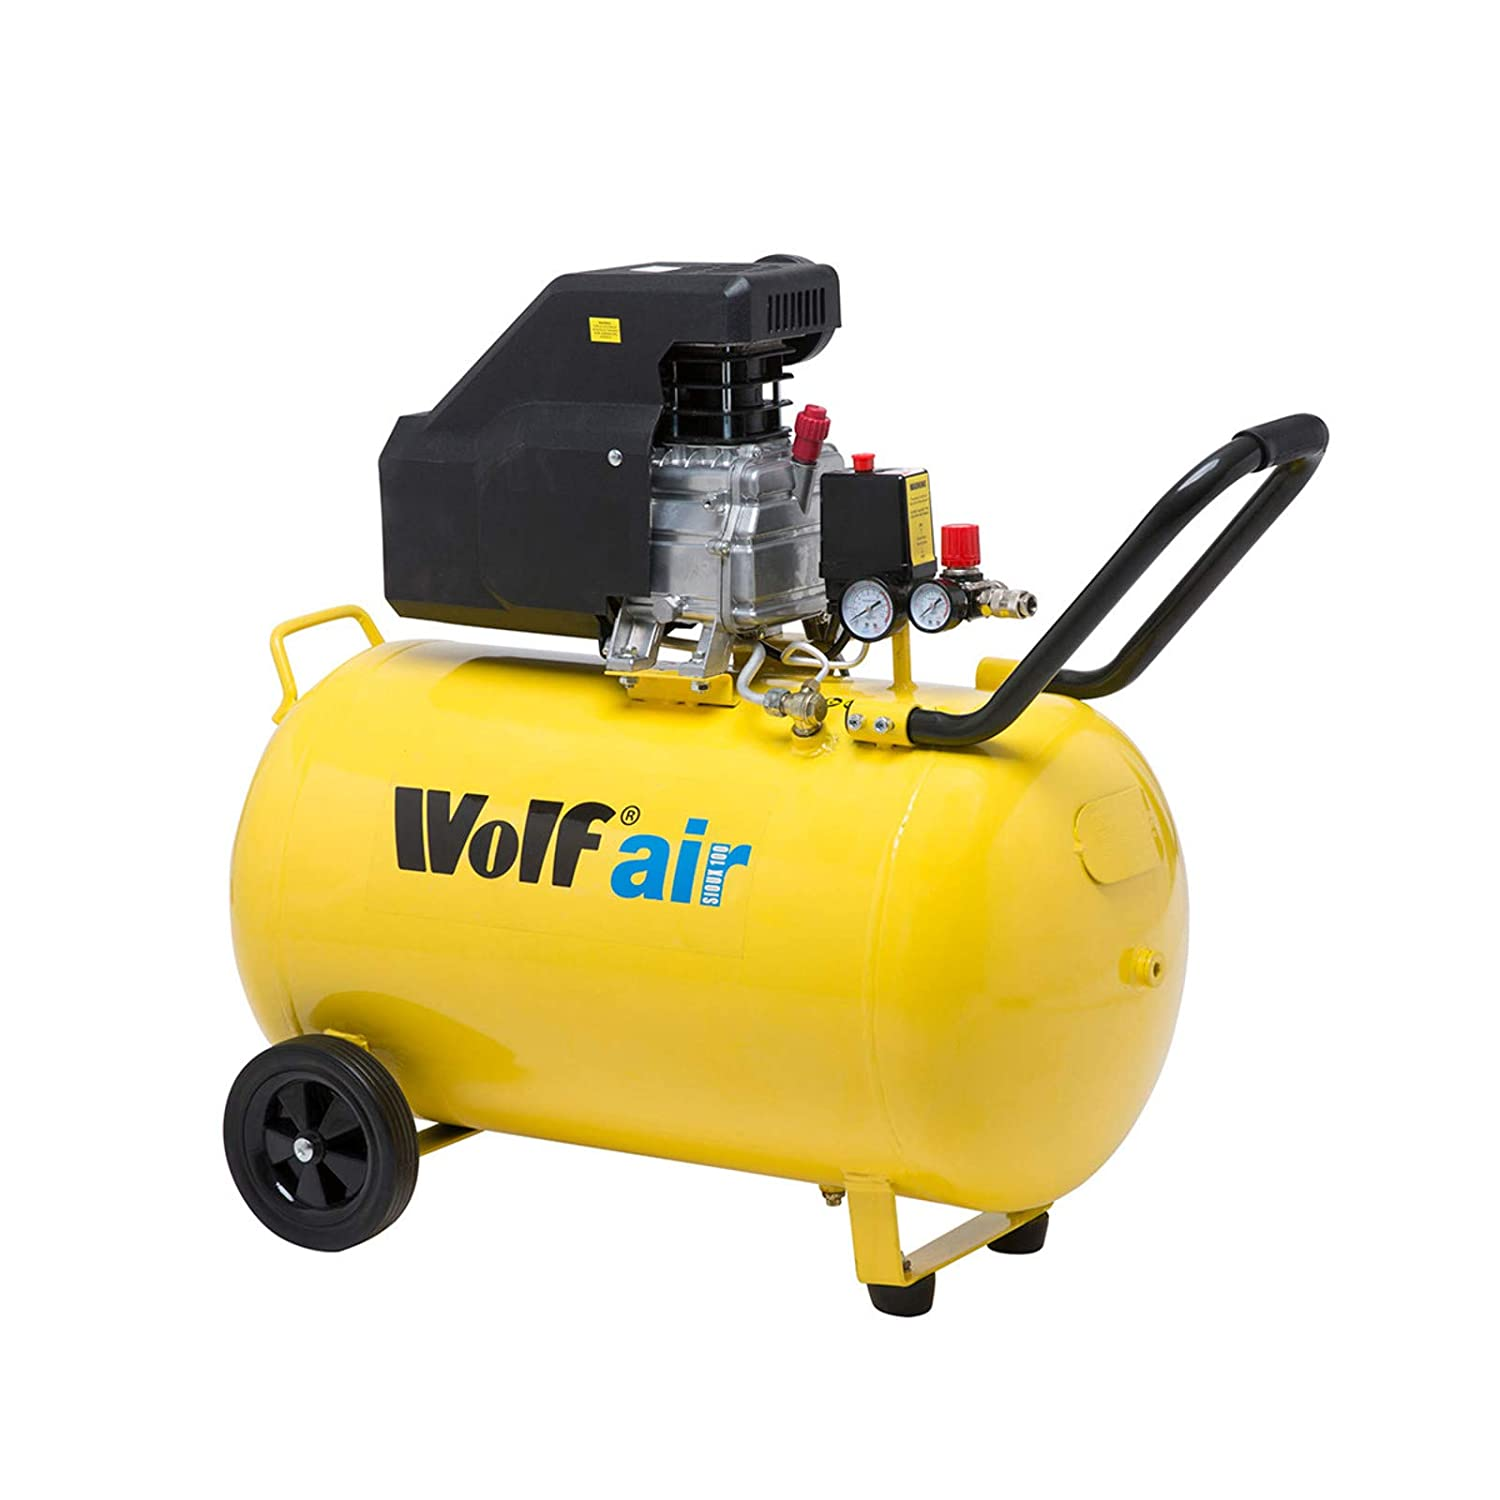 Wolf Portable 100 Litre Air Compressor 116psi 9.6CFM 2.5HP 230v 8BAR - 2 Years Warranty